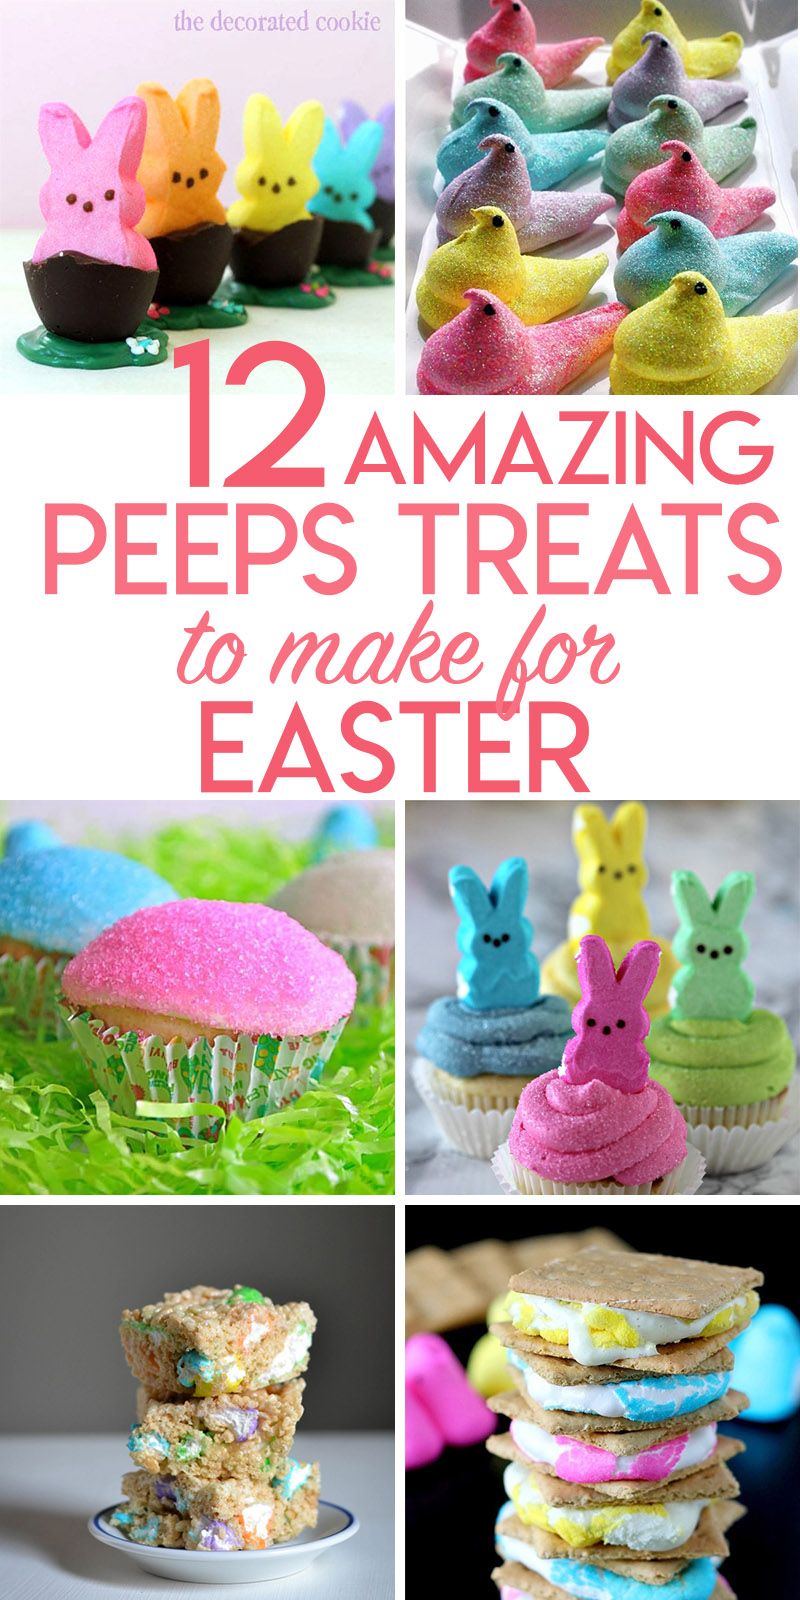 12 recipes that either use Peeps candies or are inspired by them.